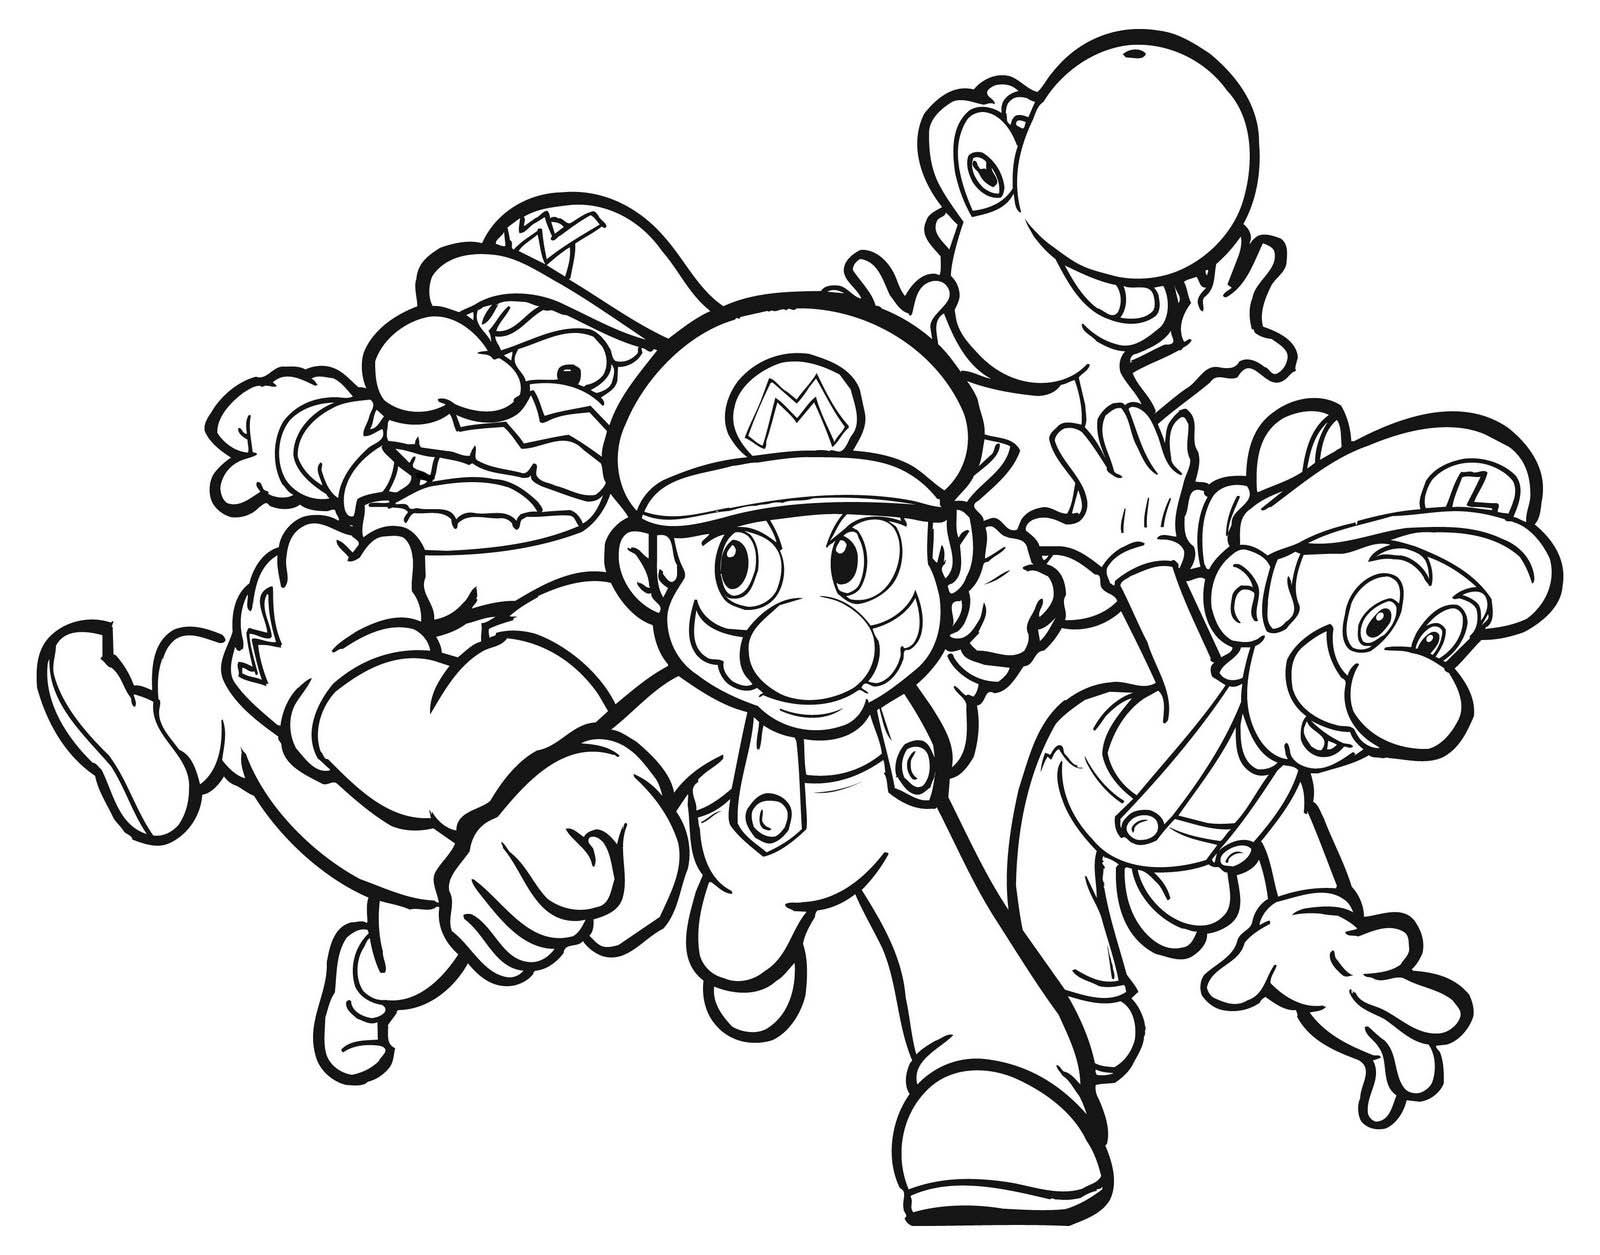 Free Printable Mario Coloring Pages For Kids In 2018